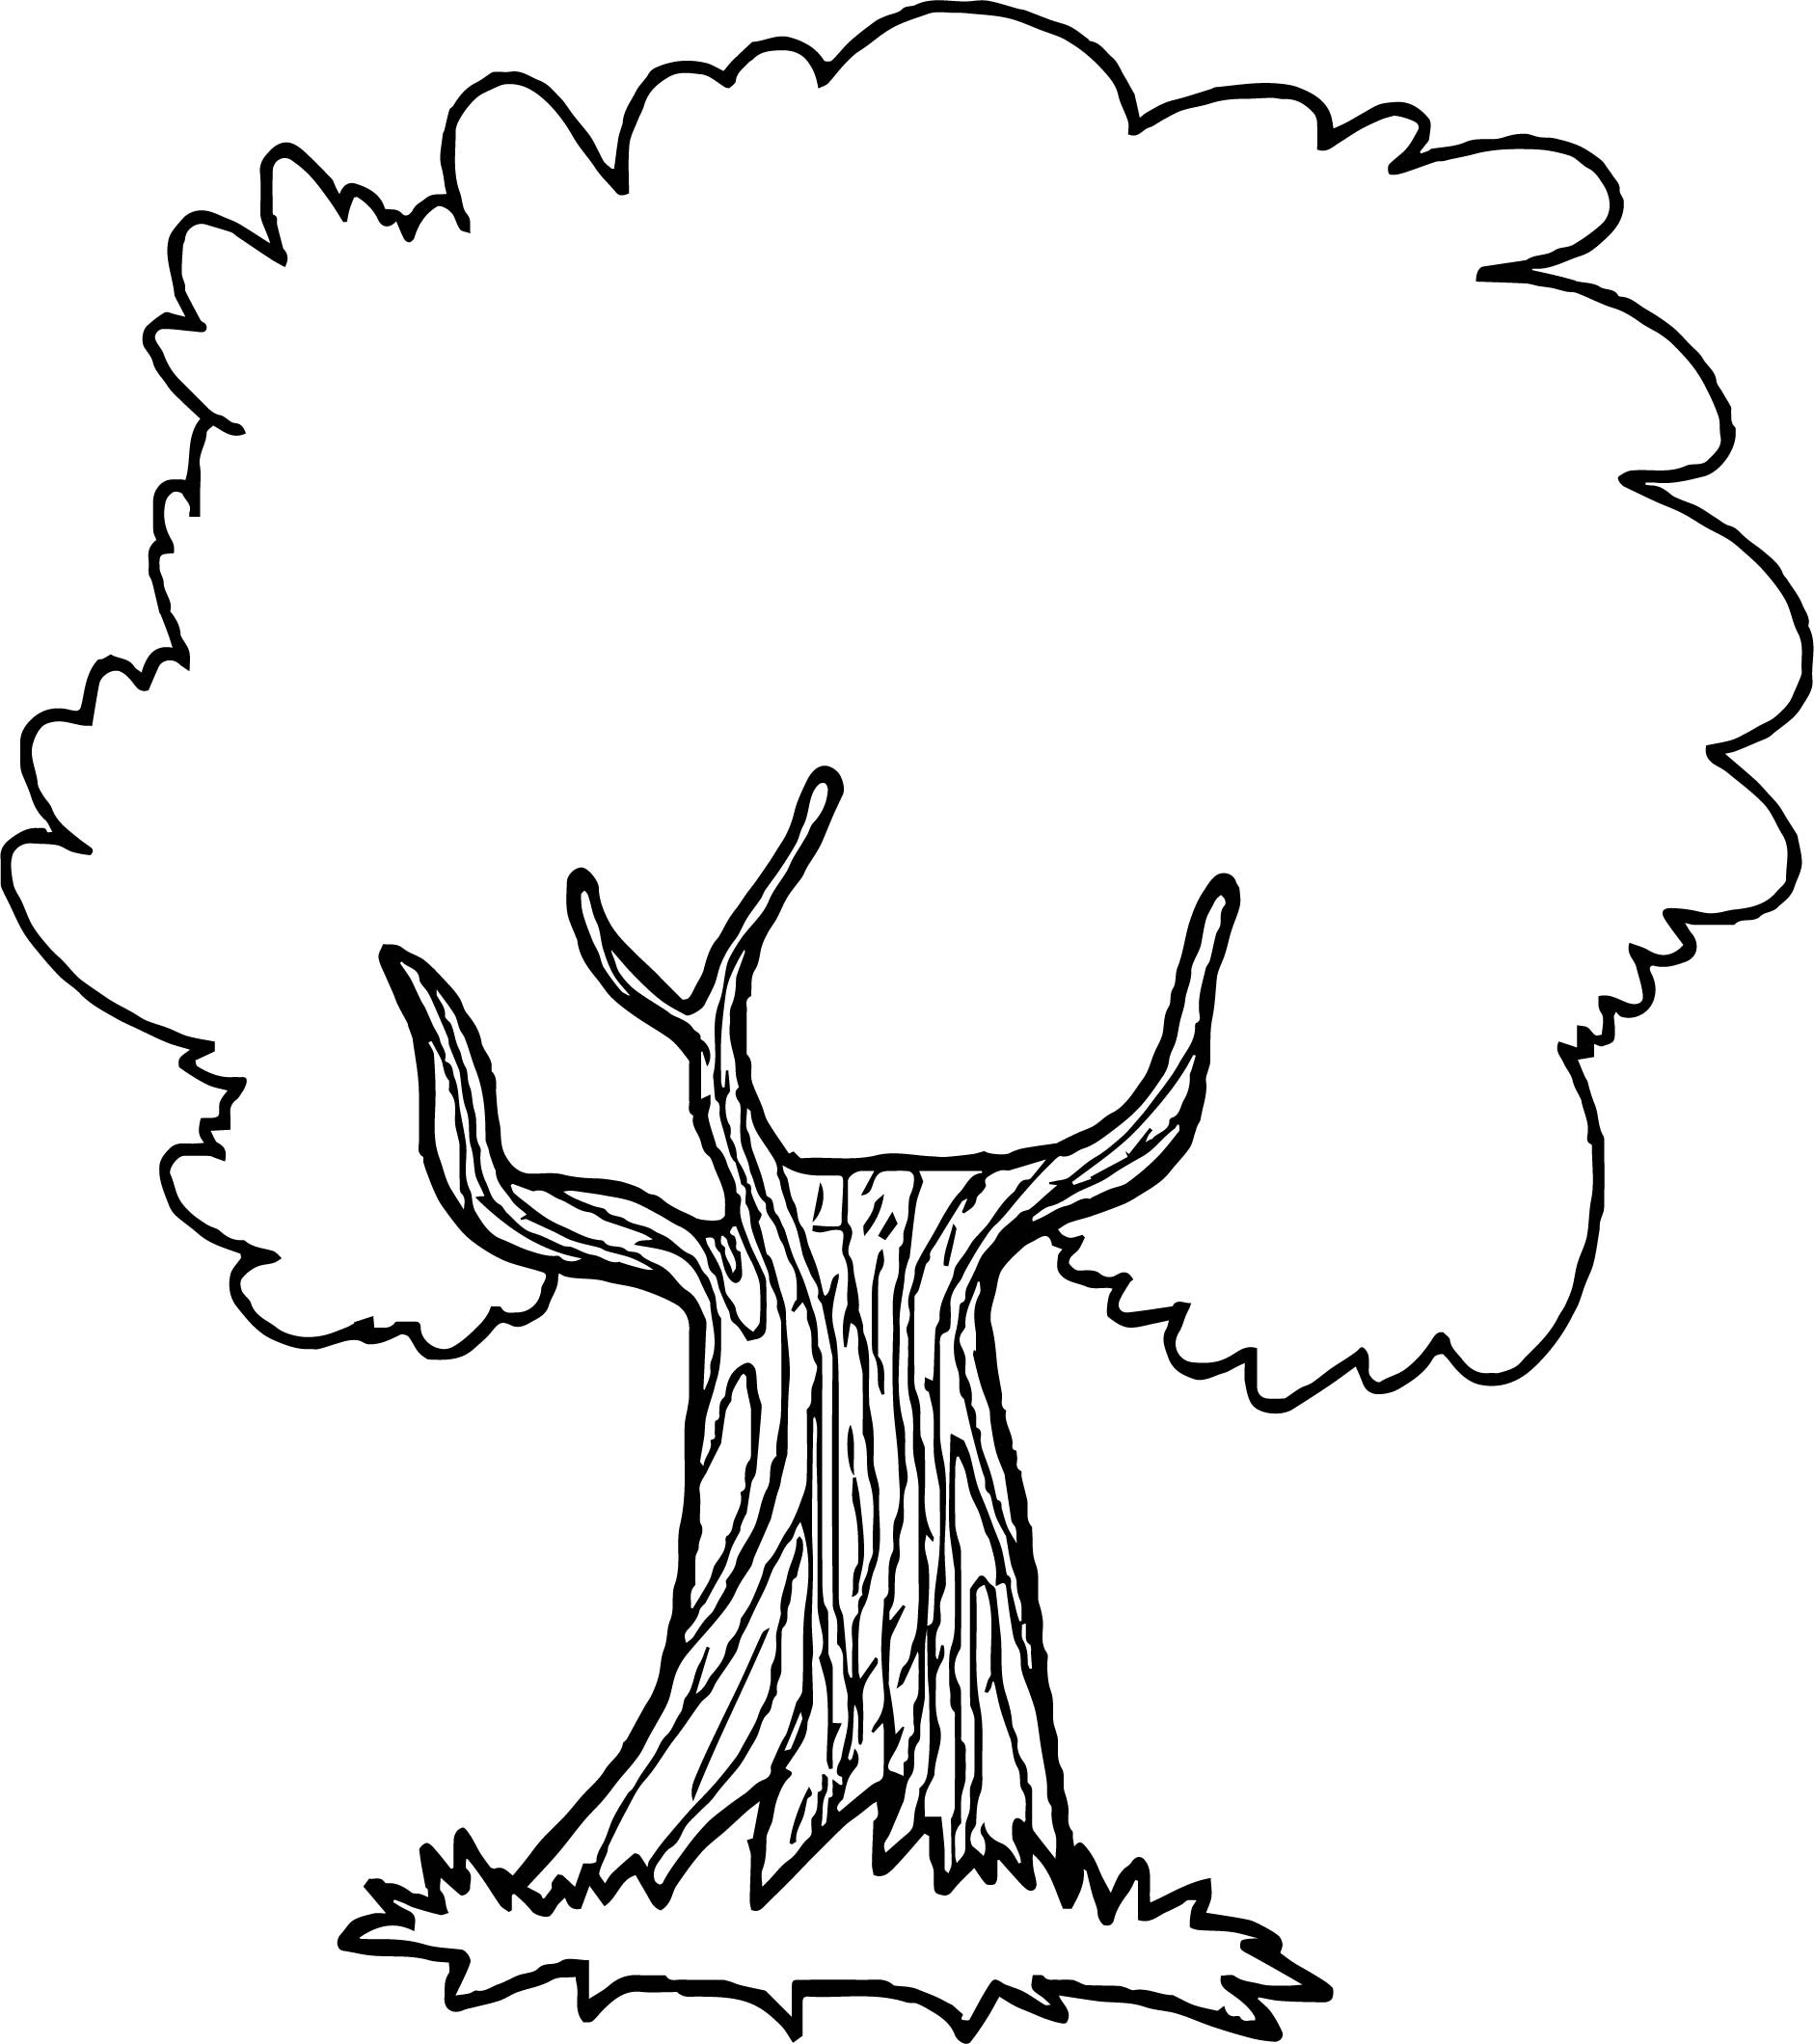 Thoughtful Apple Tree Coloring Page Wecoloringpage Com Coloring Pages